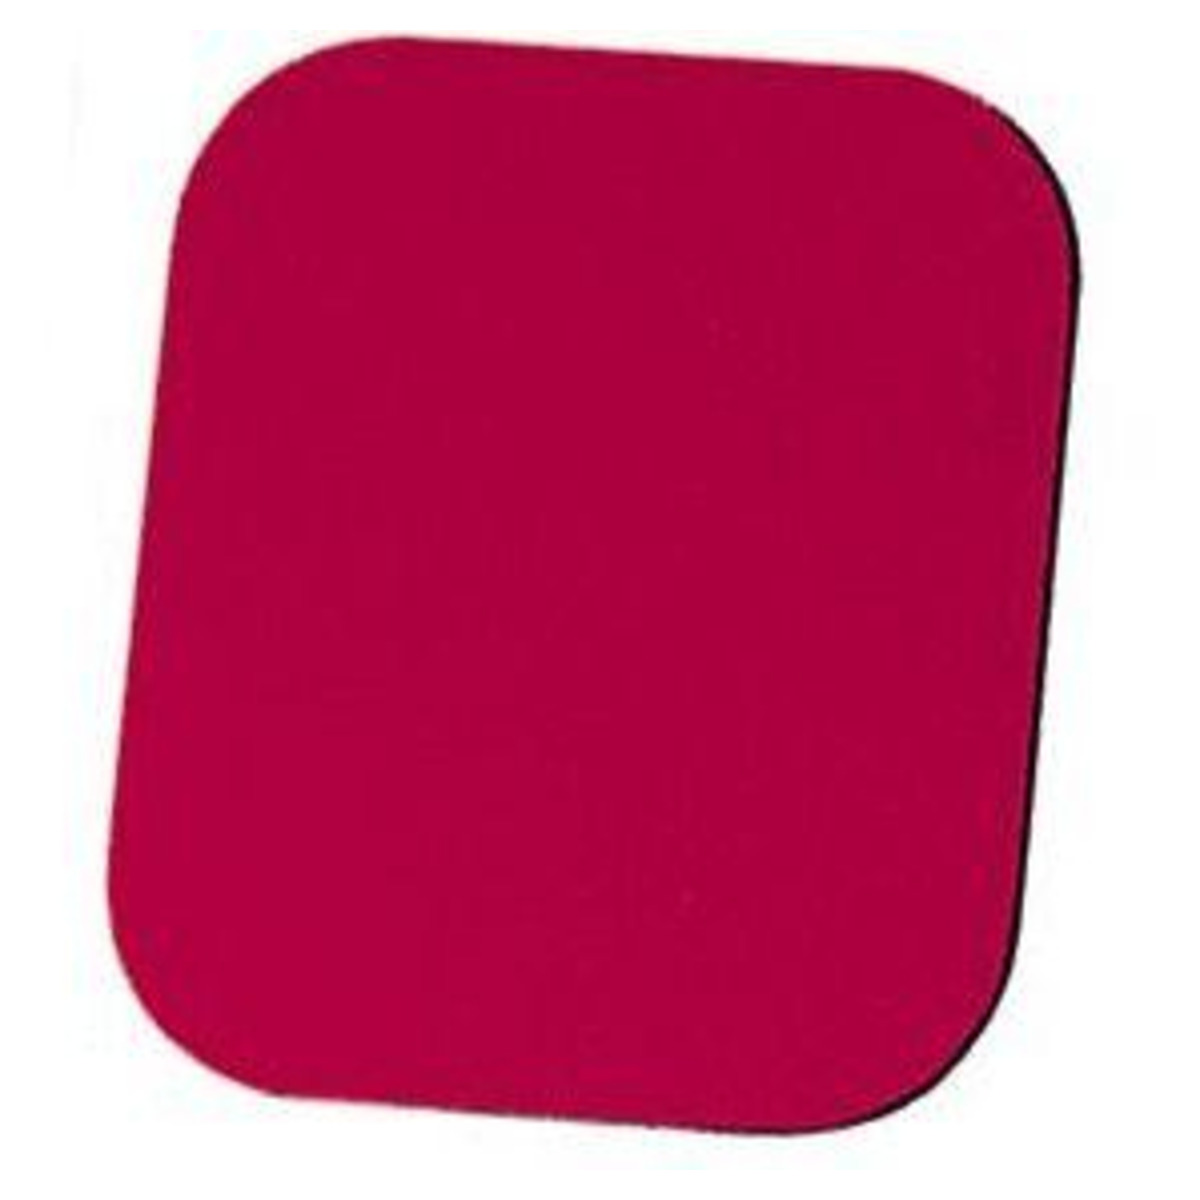 0077511580222-fellowes-58022-tappetino-per-mouse-rosso